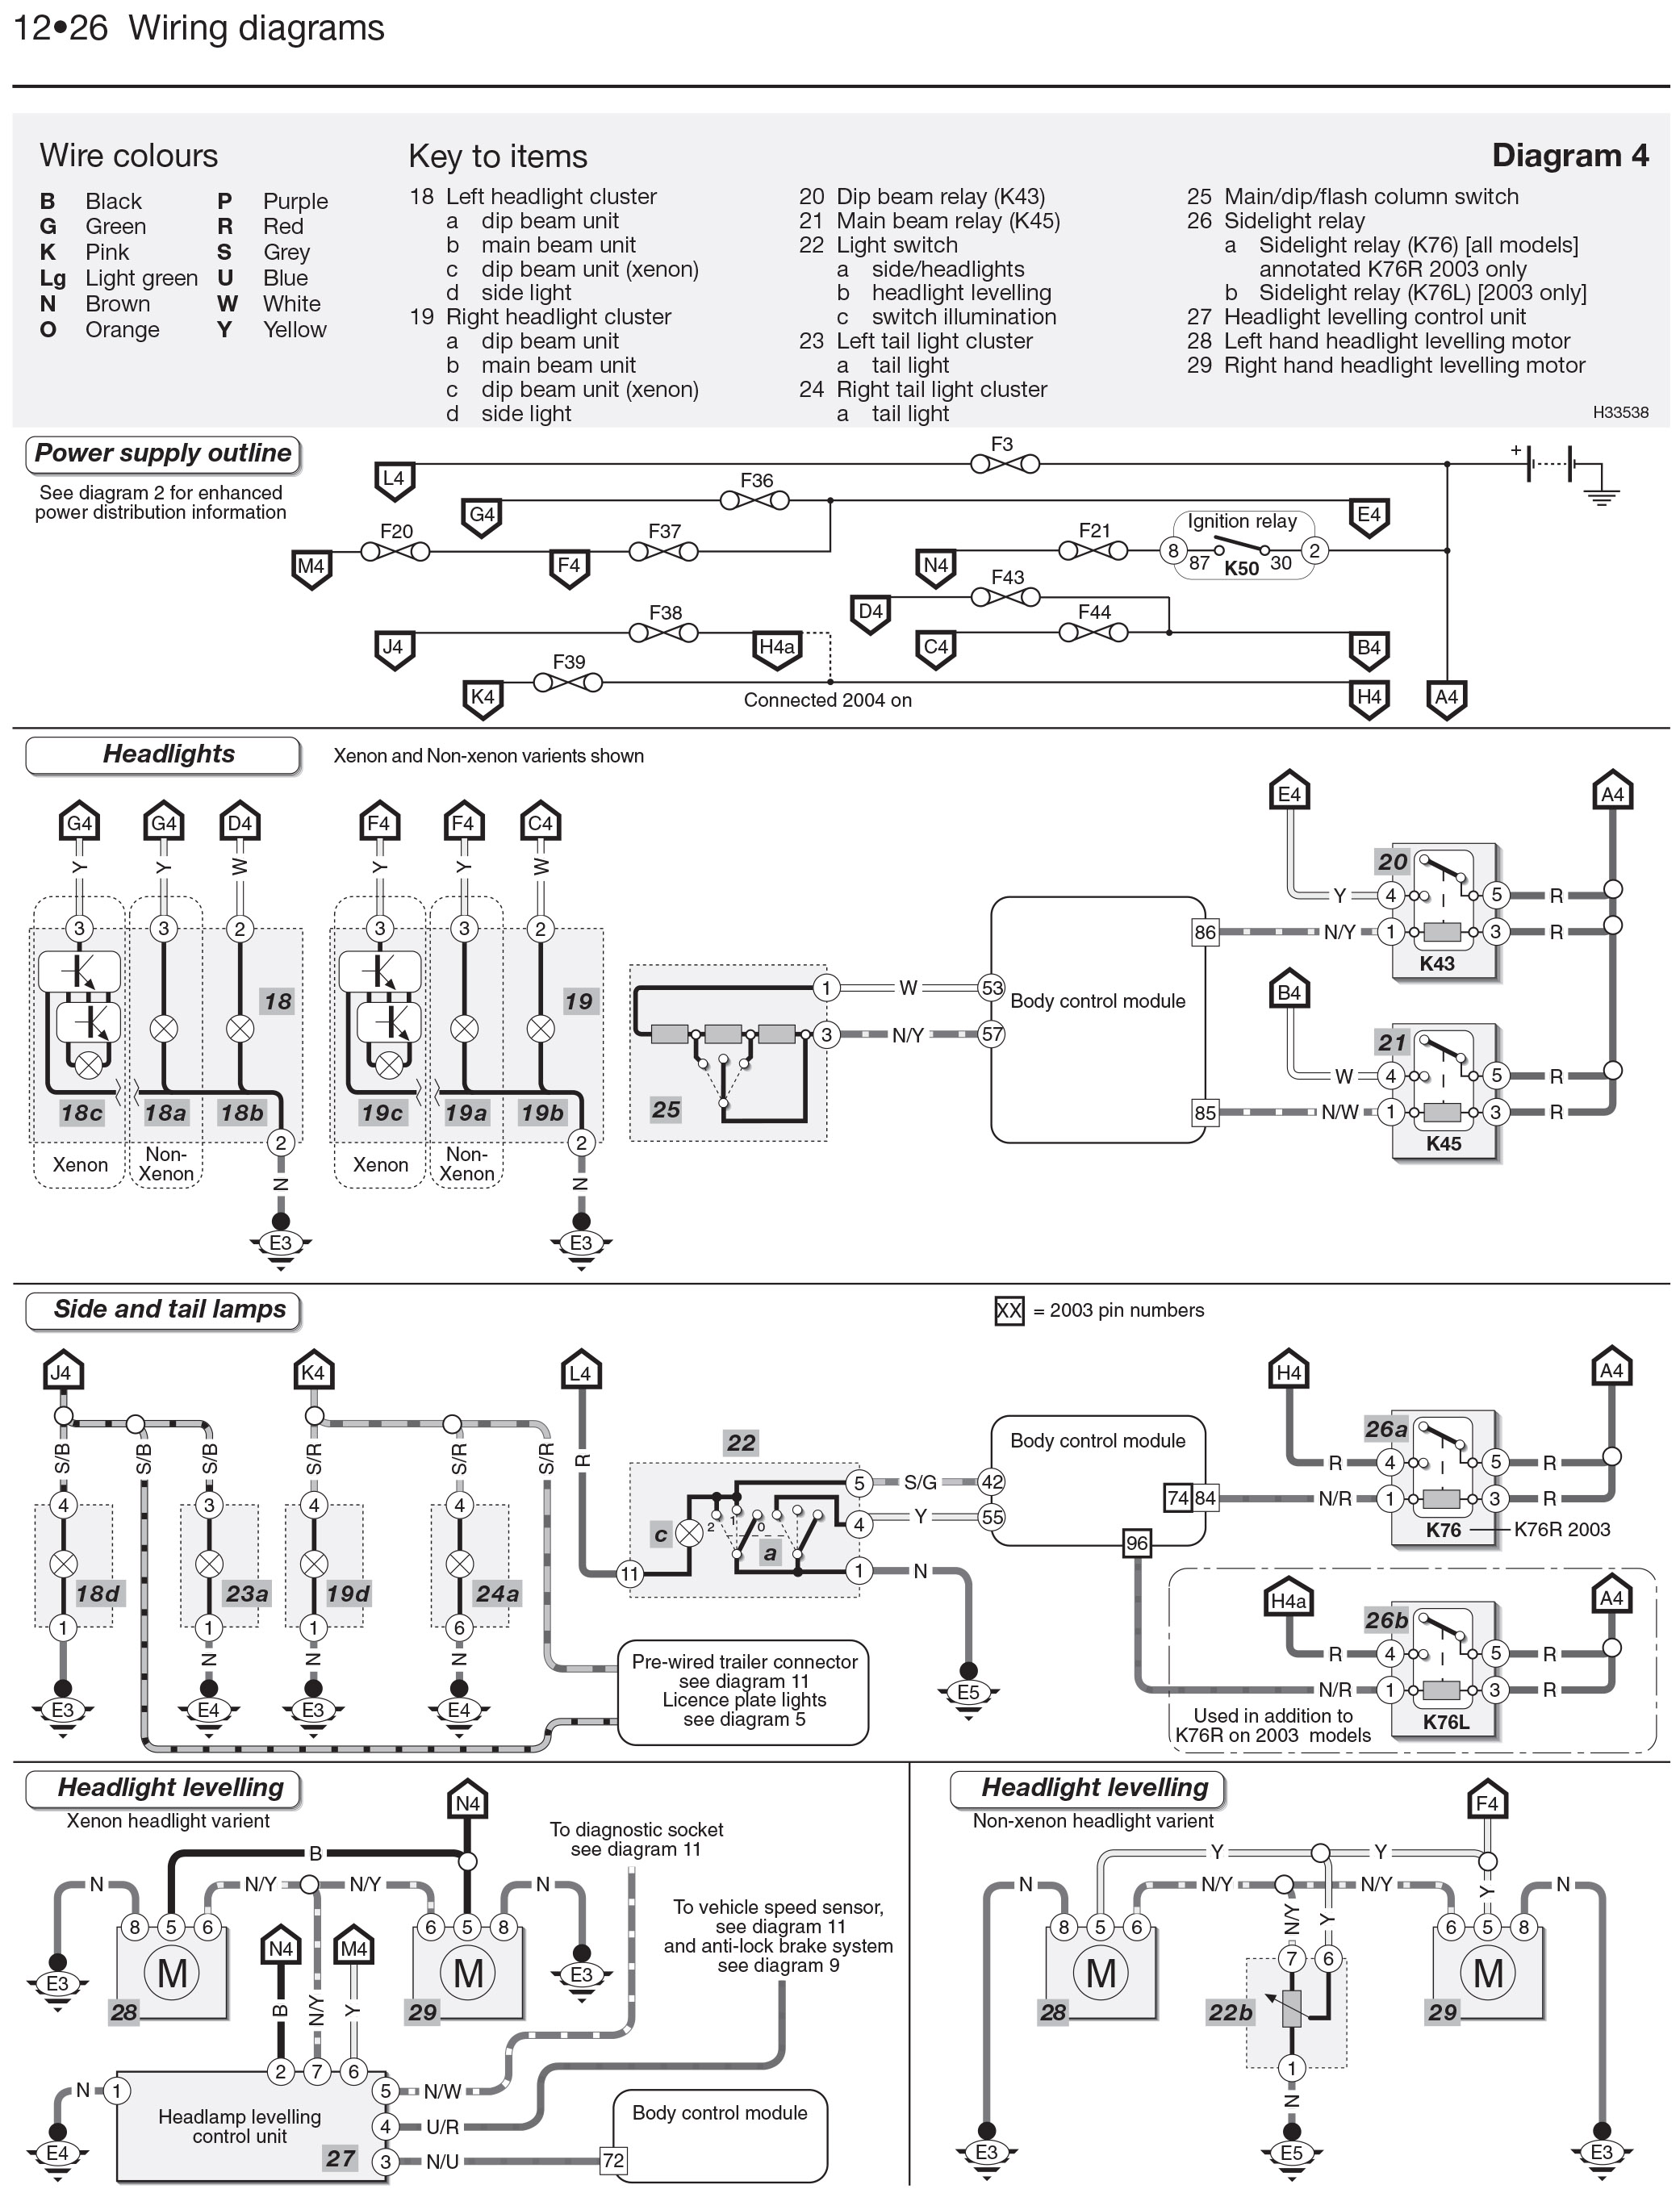 Wiring diagram for zafira towbar love wiring diagram ideas wiring diagram for zafira towbar asfbconference2016 Choice Image